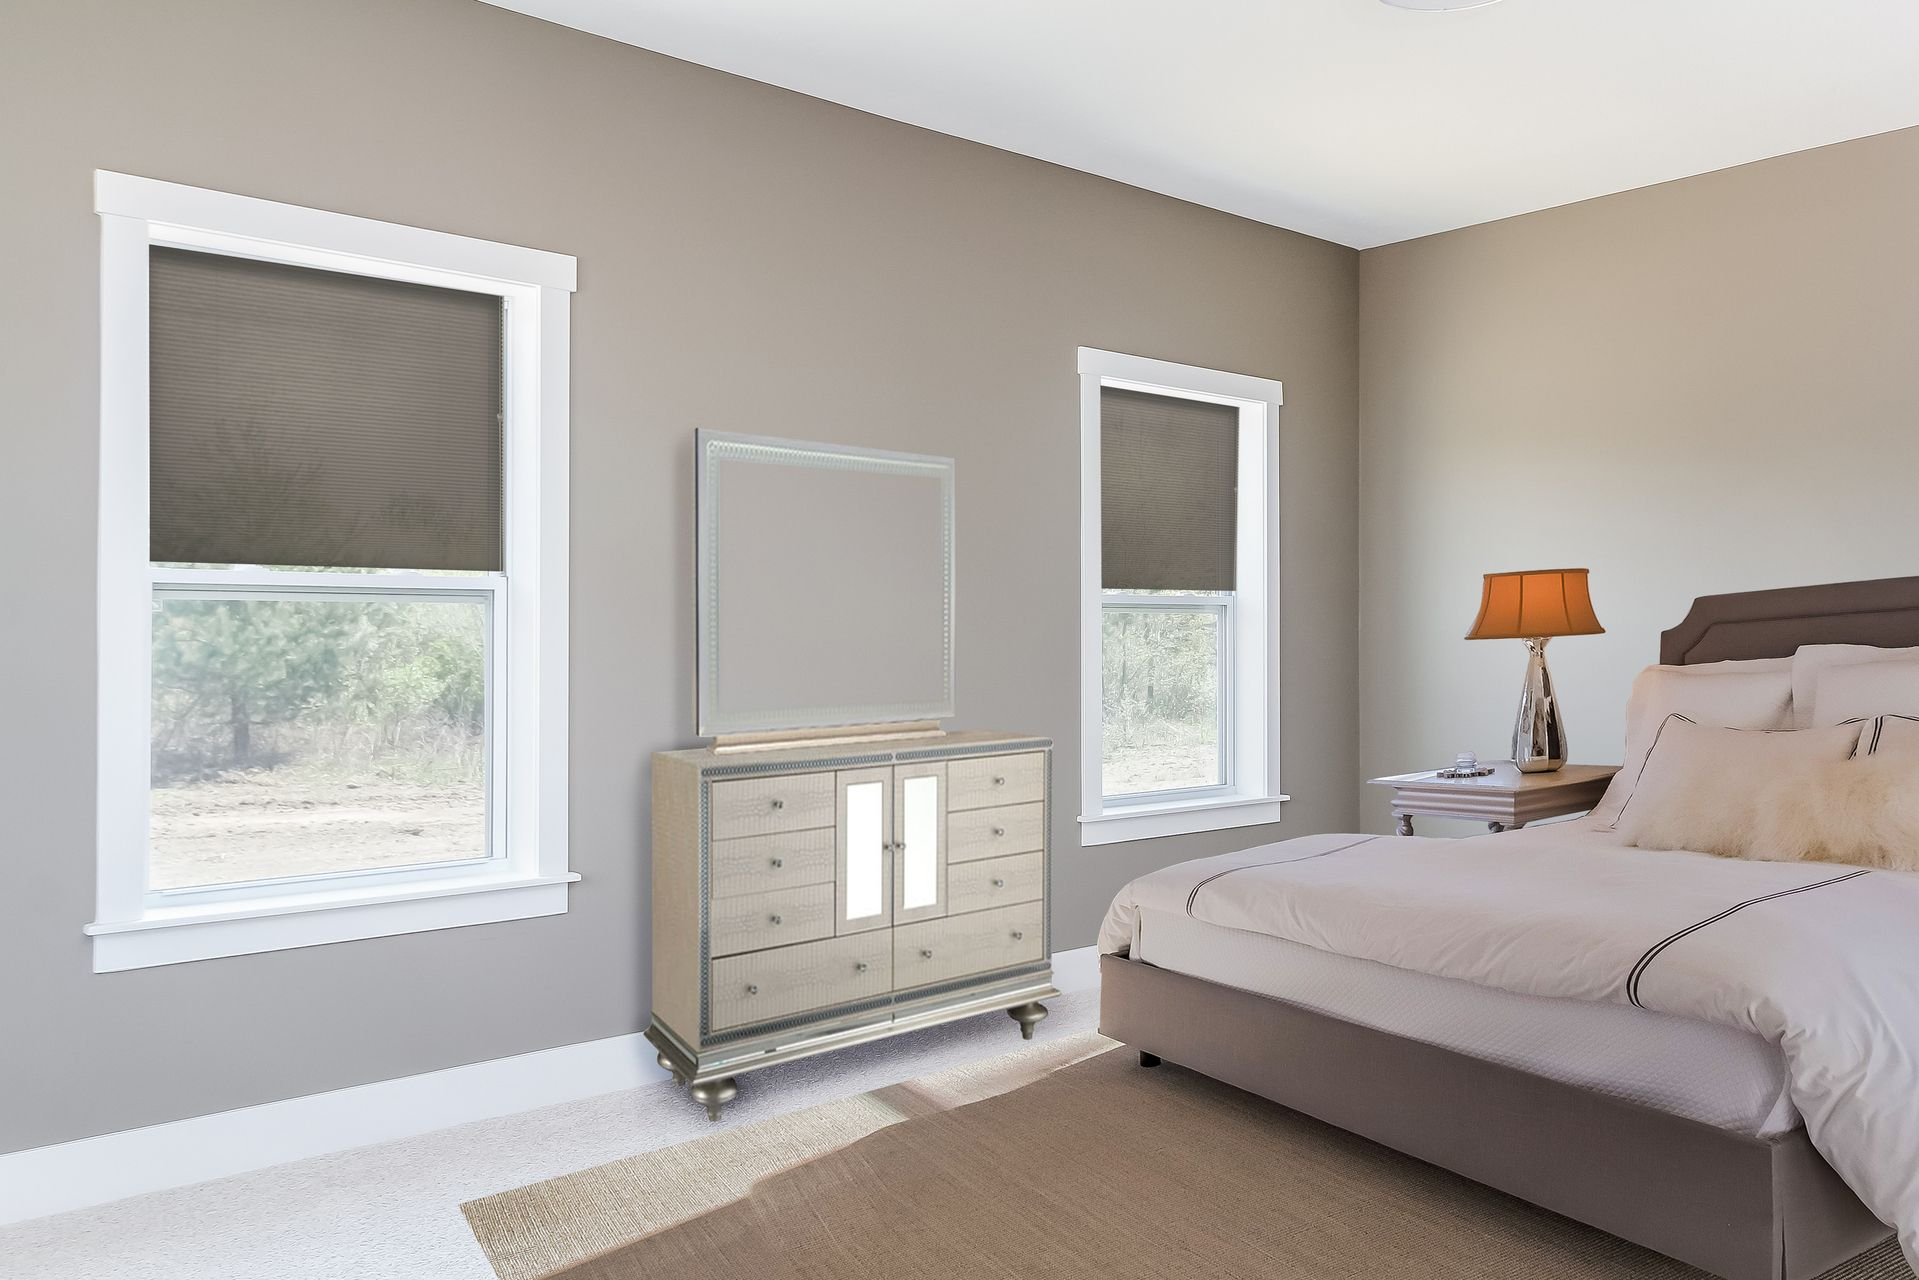 Bedroom featured in the Traditions 2350 V8.0b By Allen Edwin Homes in Flint, MI